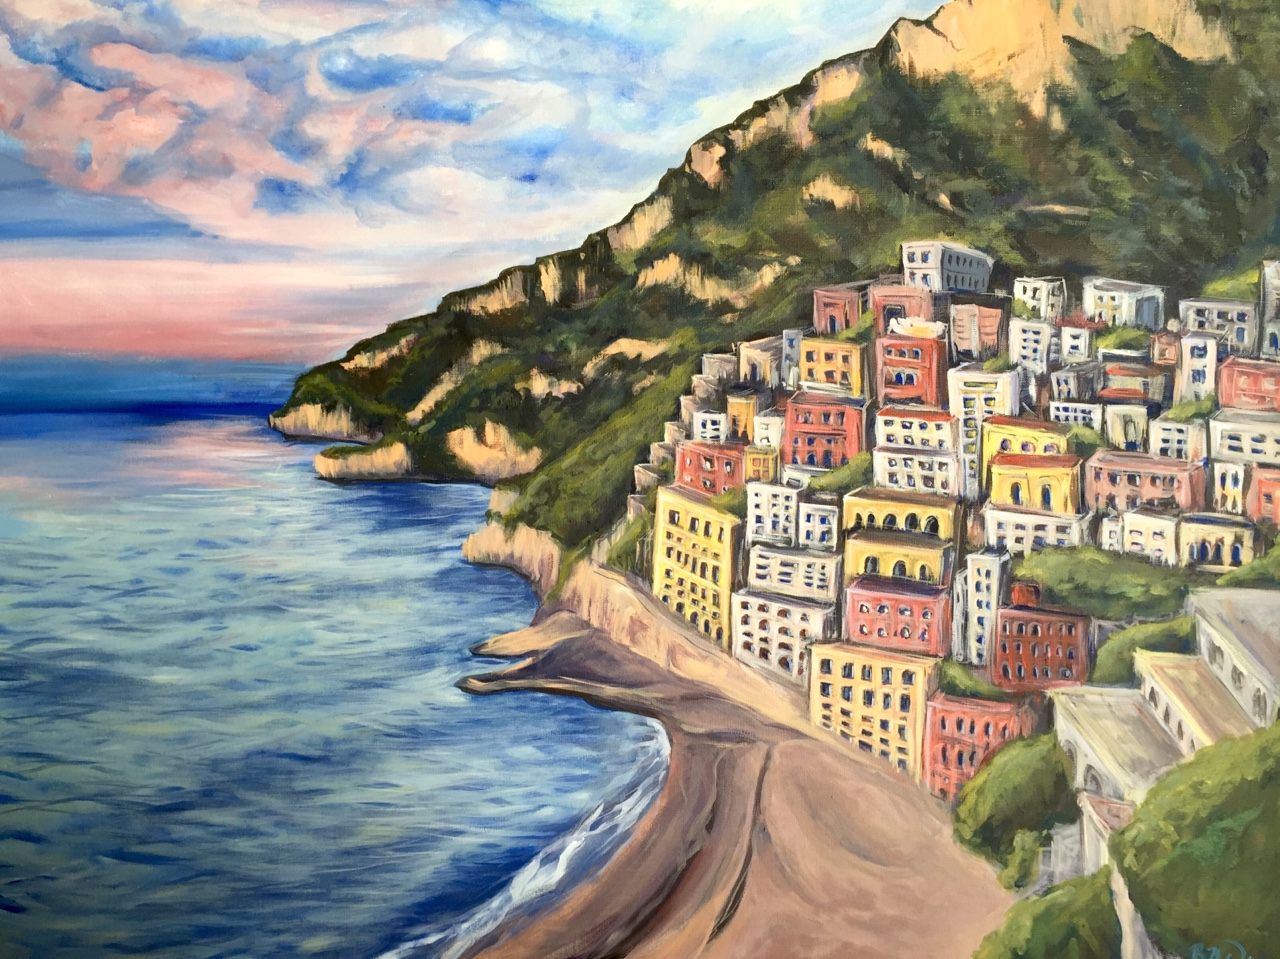 Amalfi Coast   2016. Acrylic on canvas. 30 x 39.6